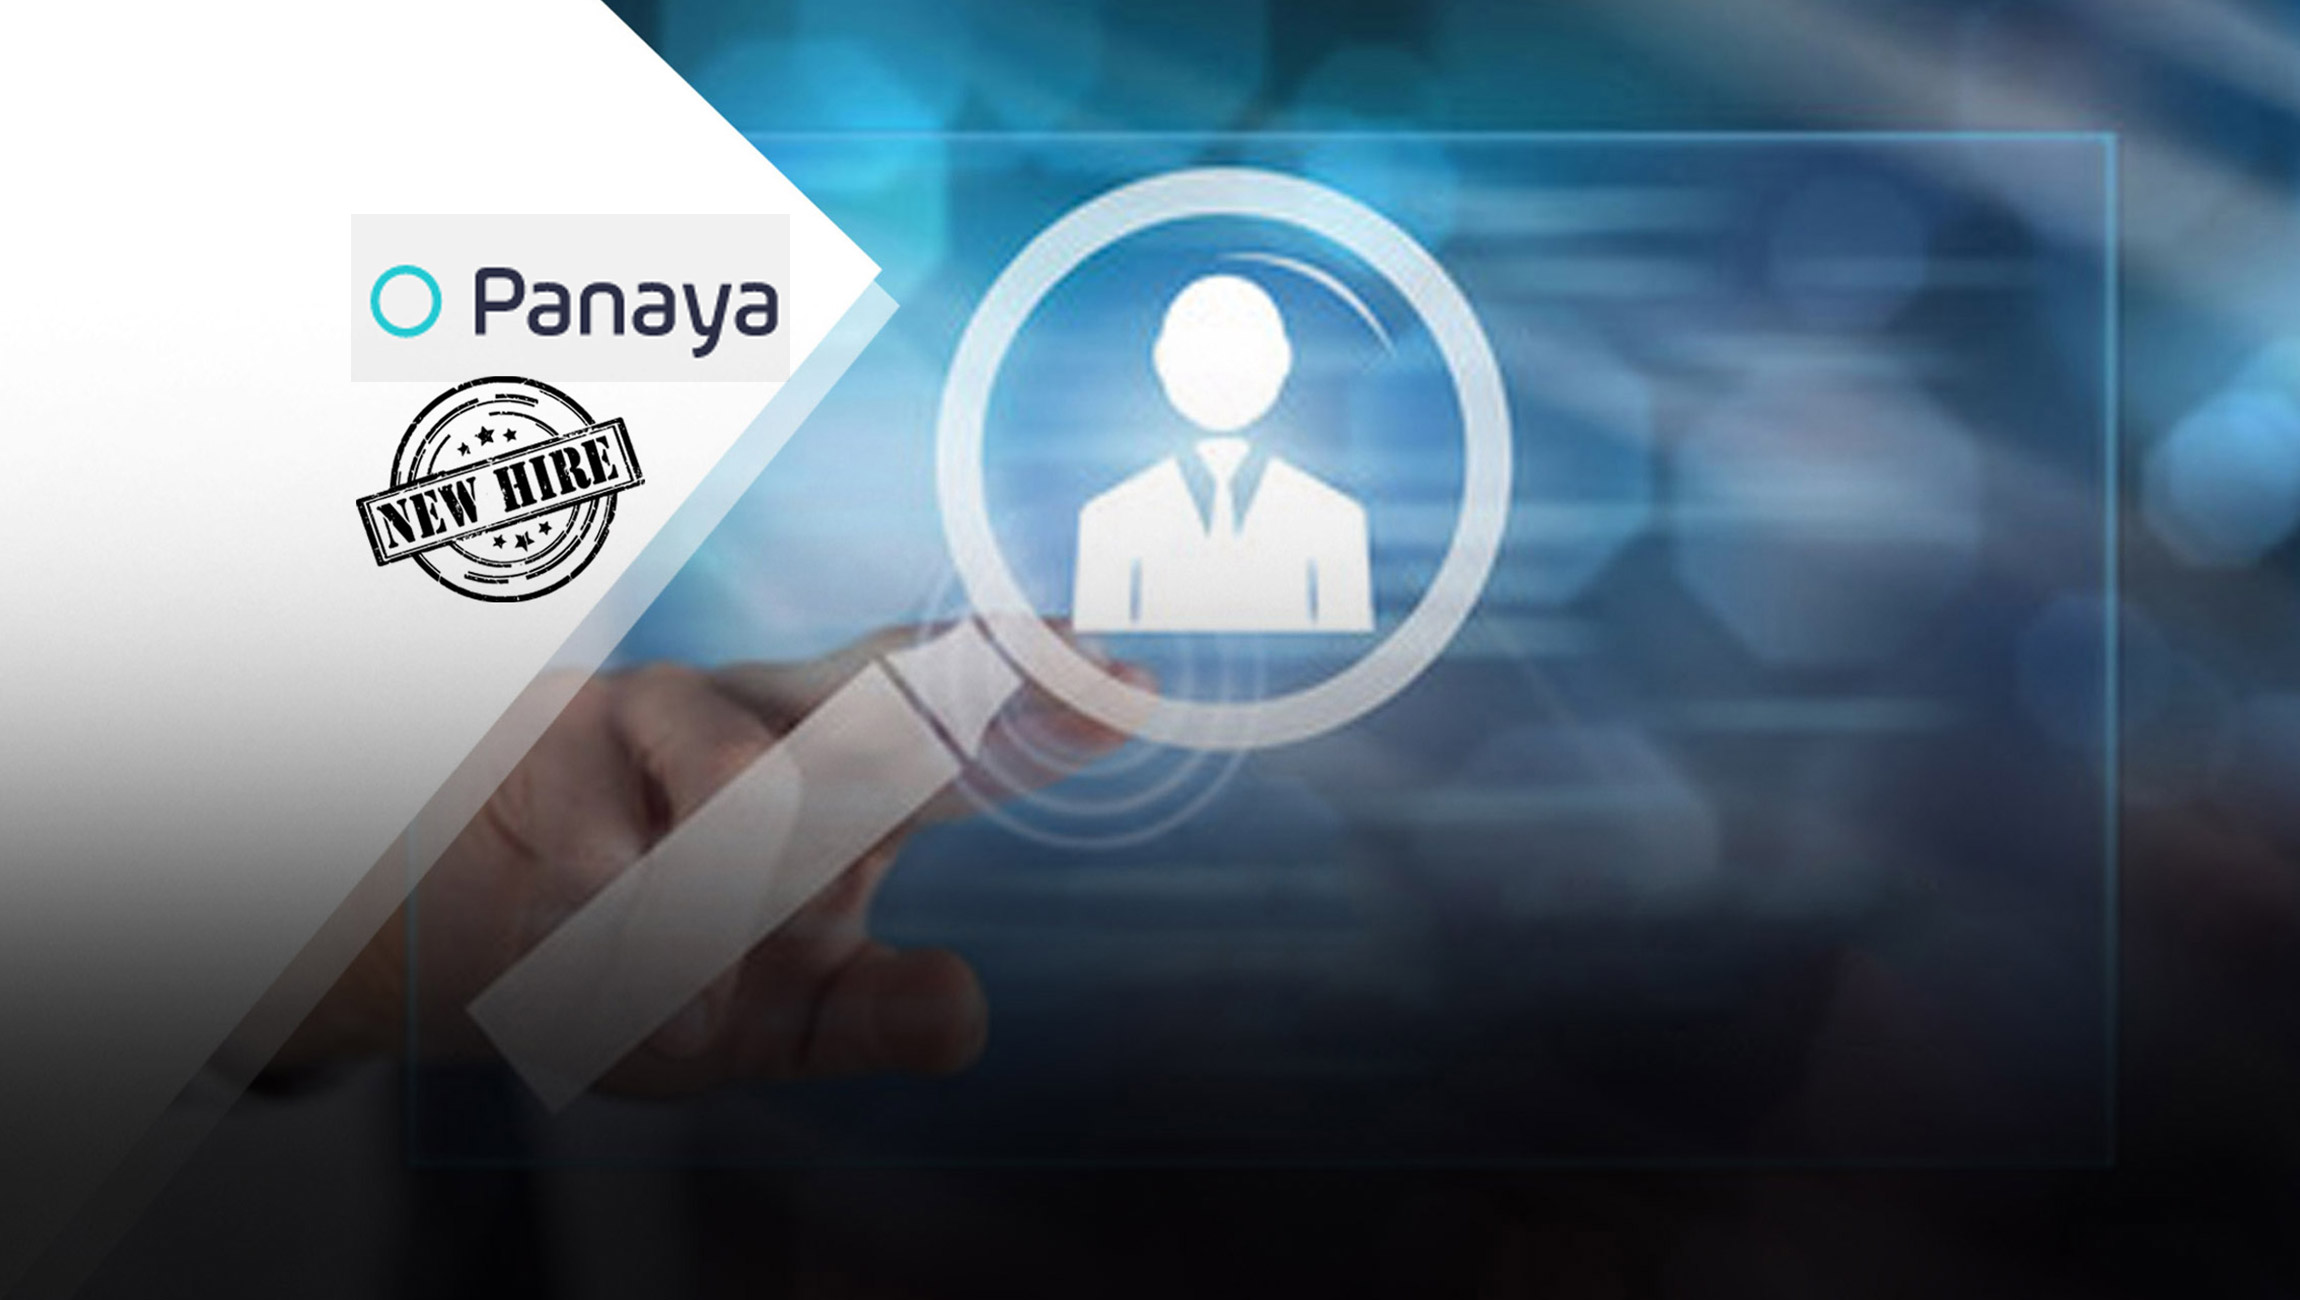 Panaya Appoints Dana Averbouch as Chief Marketing Officer